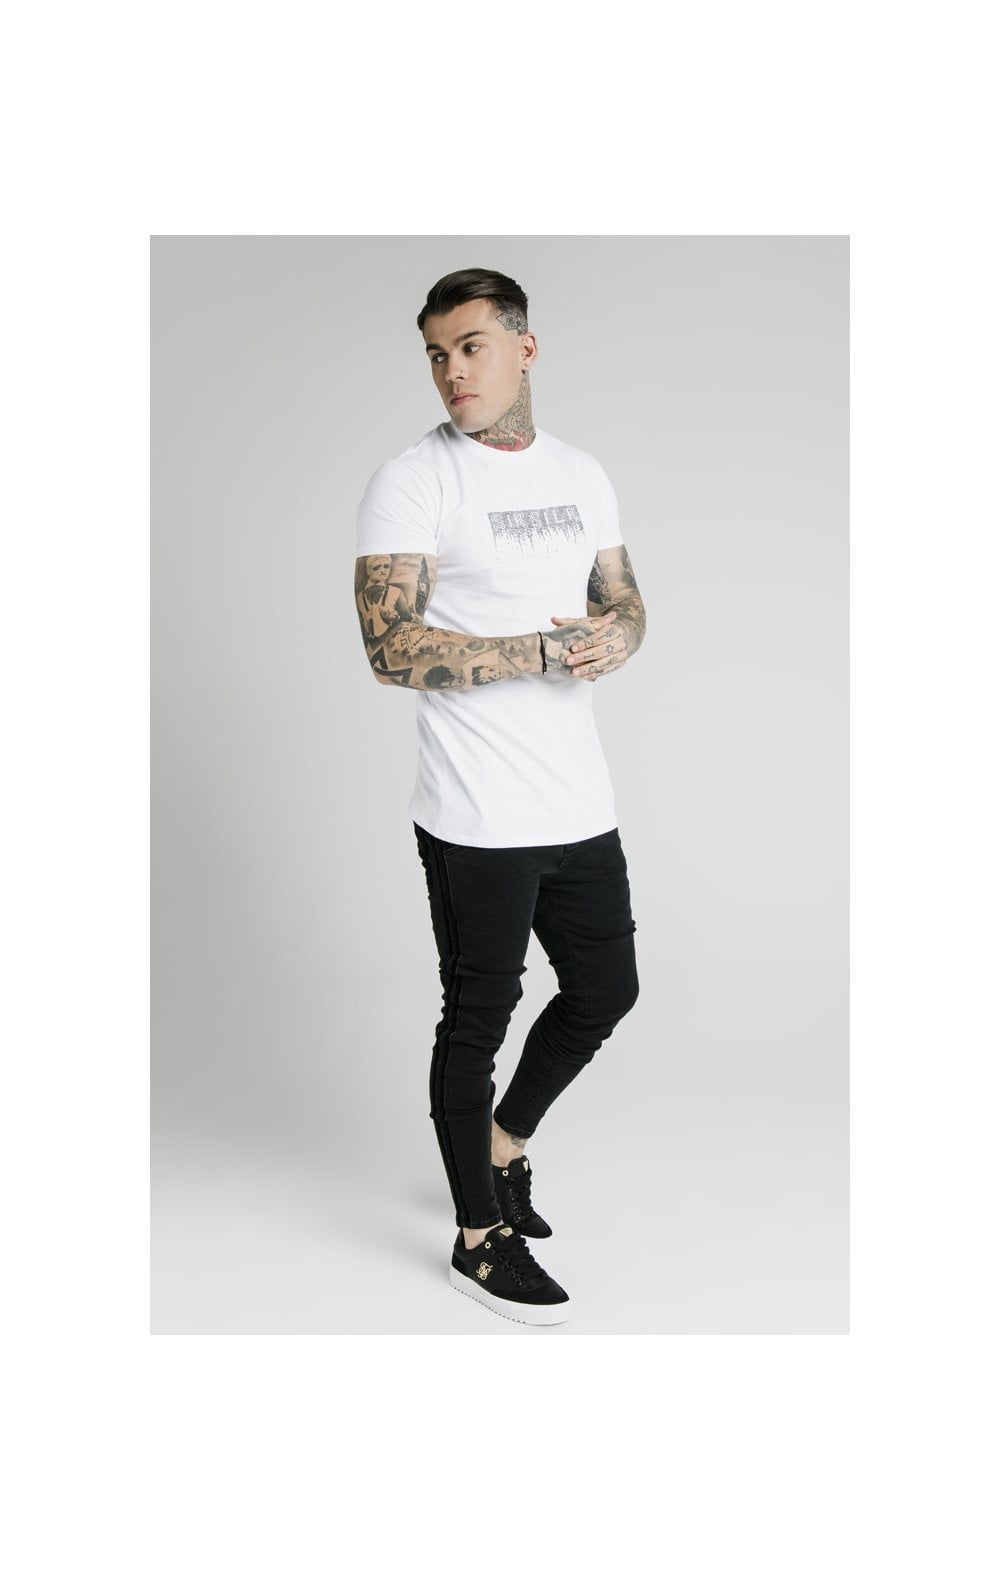 Load image into Gallery viewer, SikSilk Rhinestone Creep Tee – White (2)